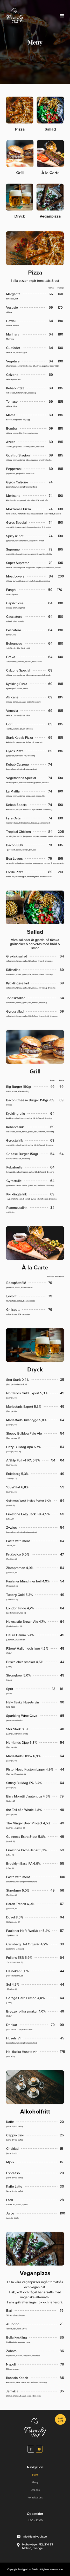 Family Pub - Menu page - Mobile